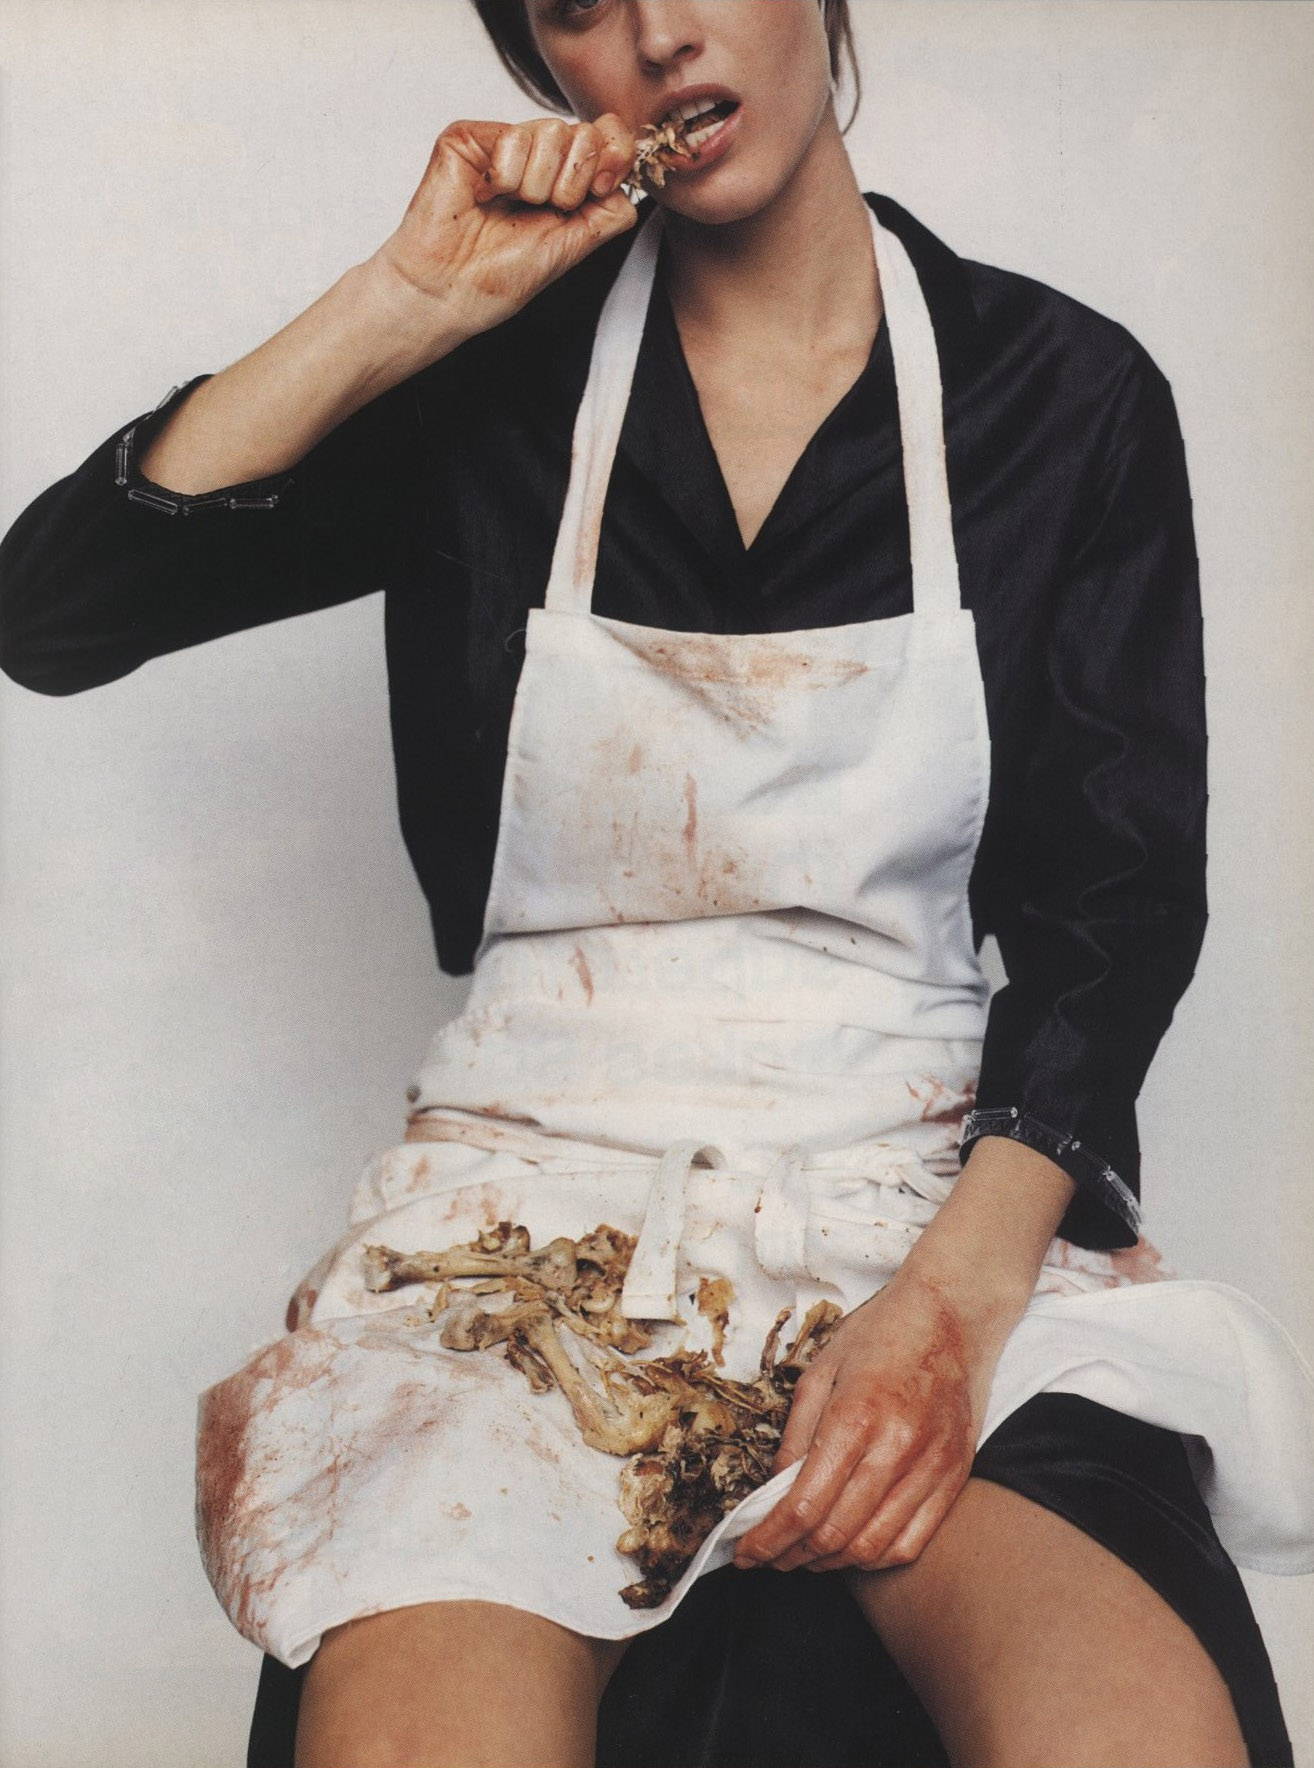 THE BUTCHER | EVA HERZIGOVA | PHOTOGRAPHY MARIO TESTINO